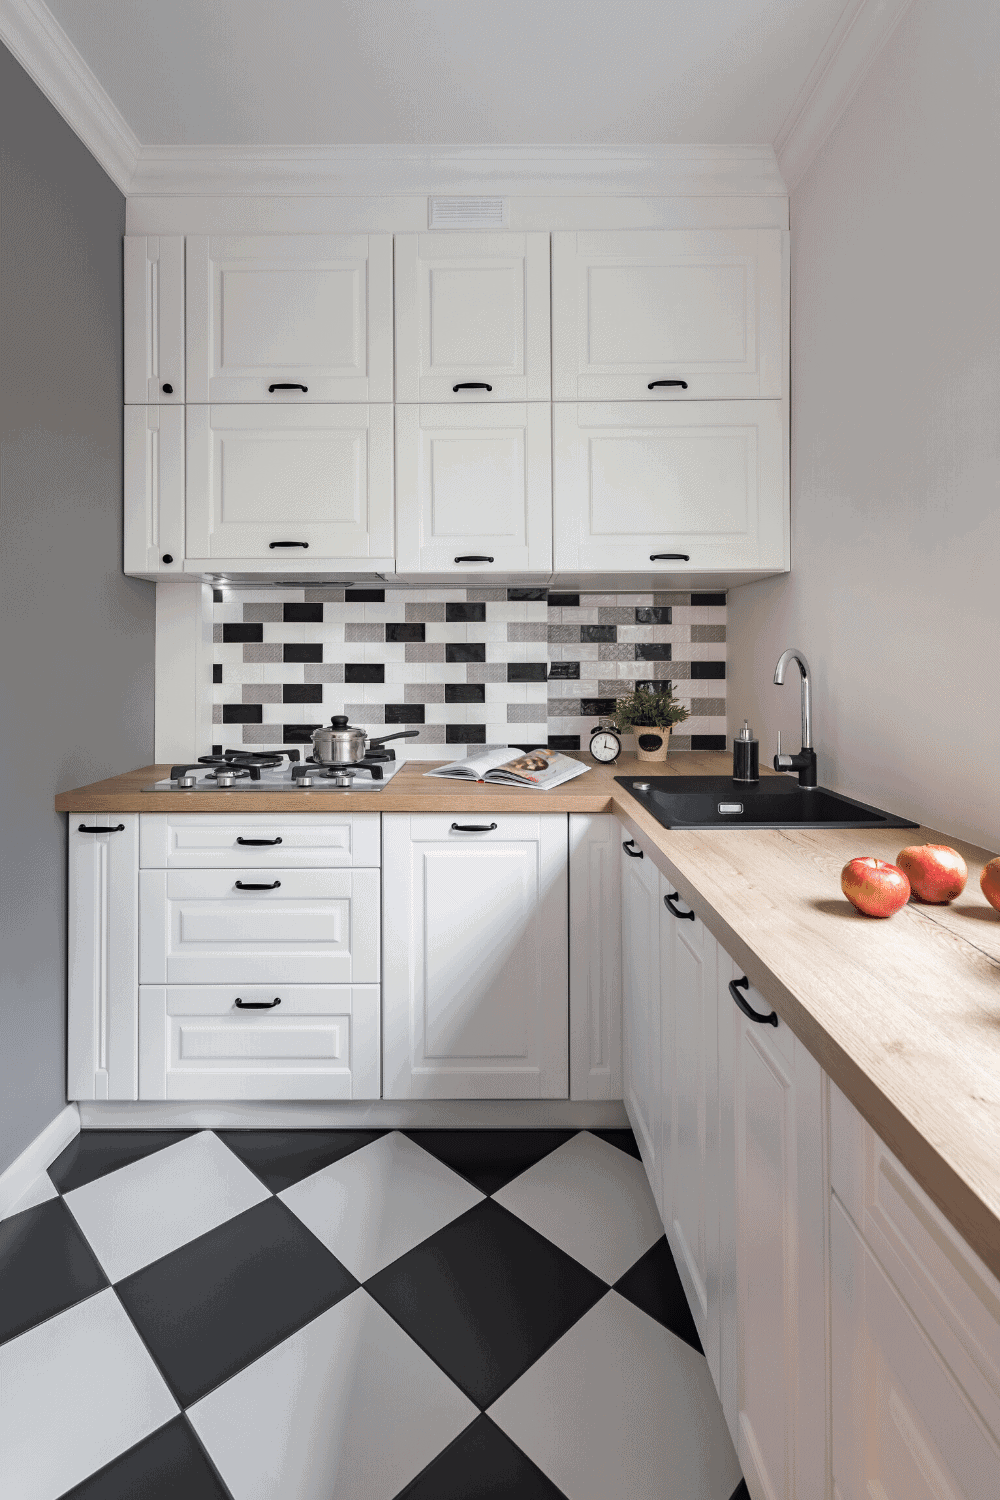 white kitchen cabinets with wooden countertops